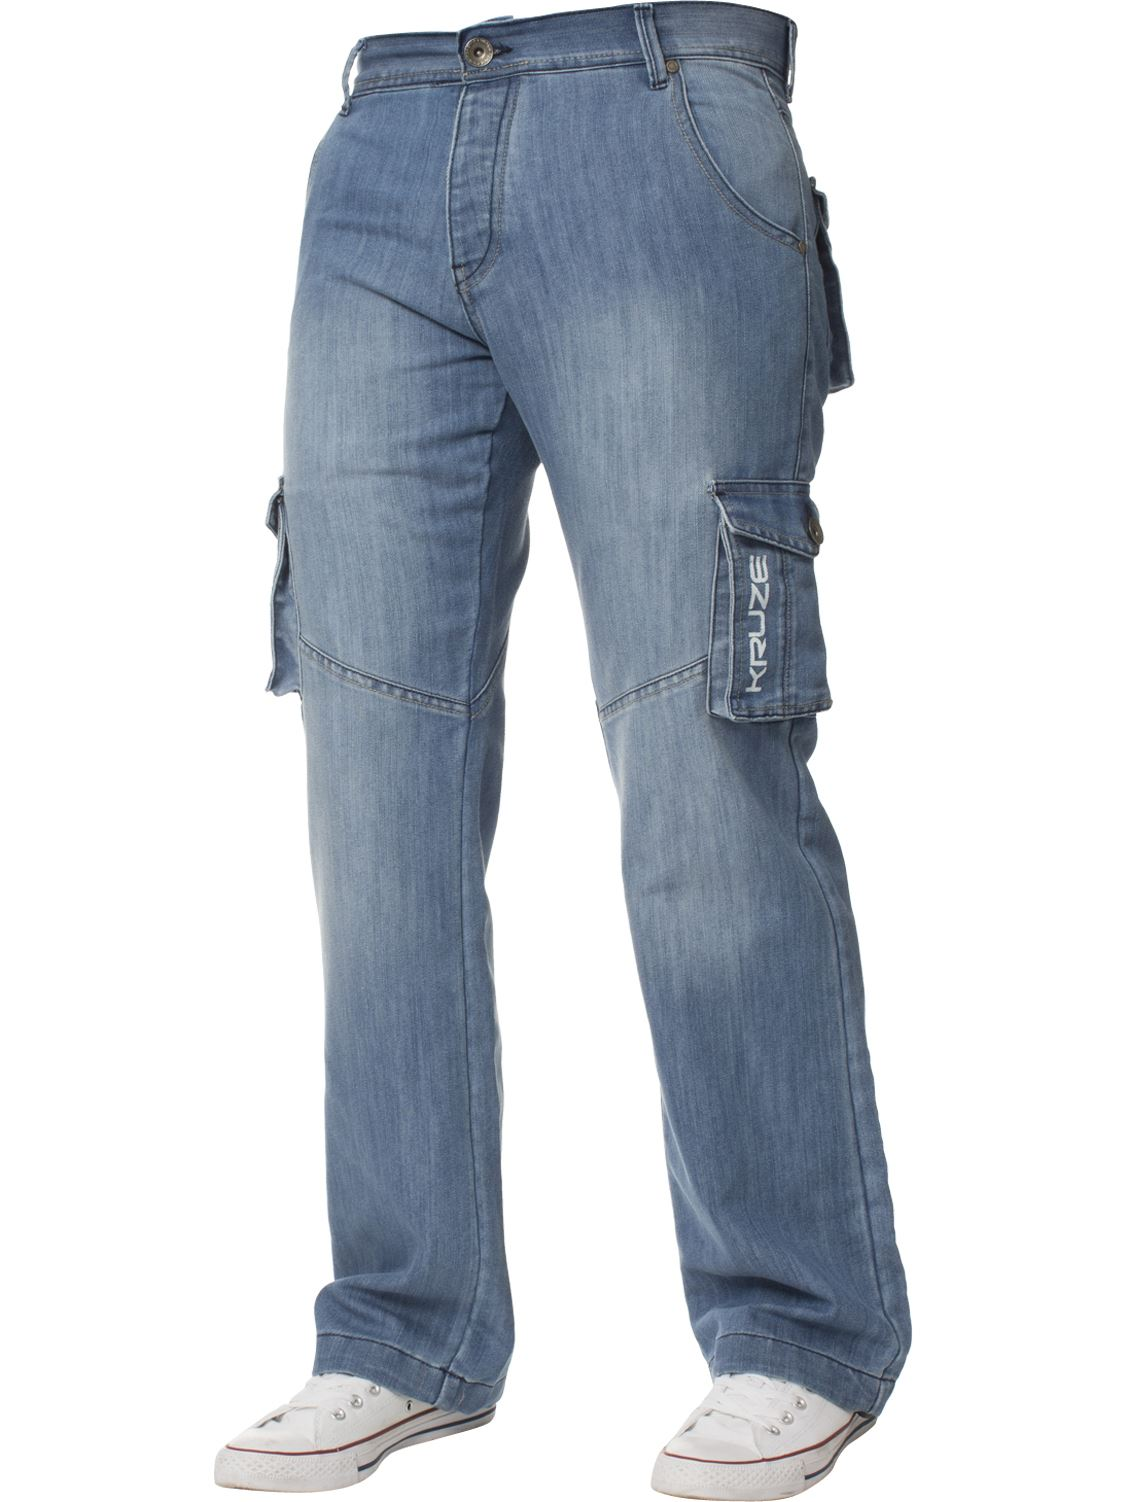 Mens-Cargo-Combat-Trousers-Jeans-Heavy-Duty-Work-Casual-Pants-Big-Tall-All-Sizes thumbnail 24